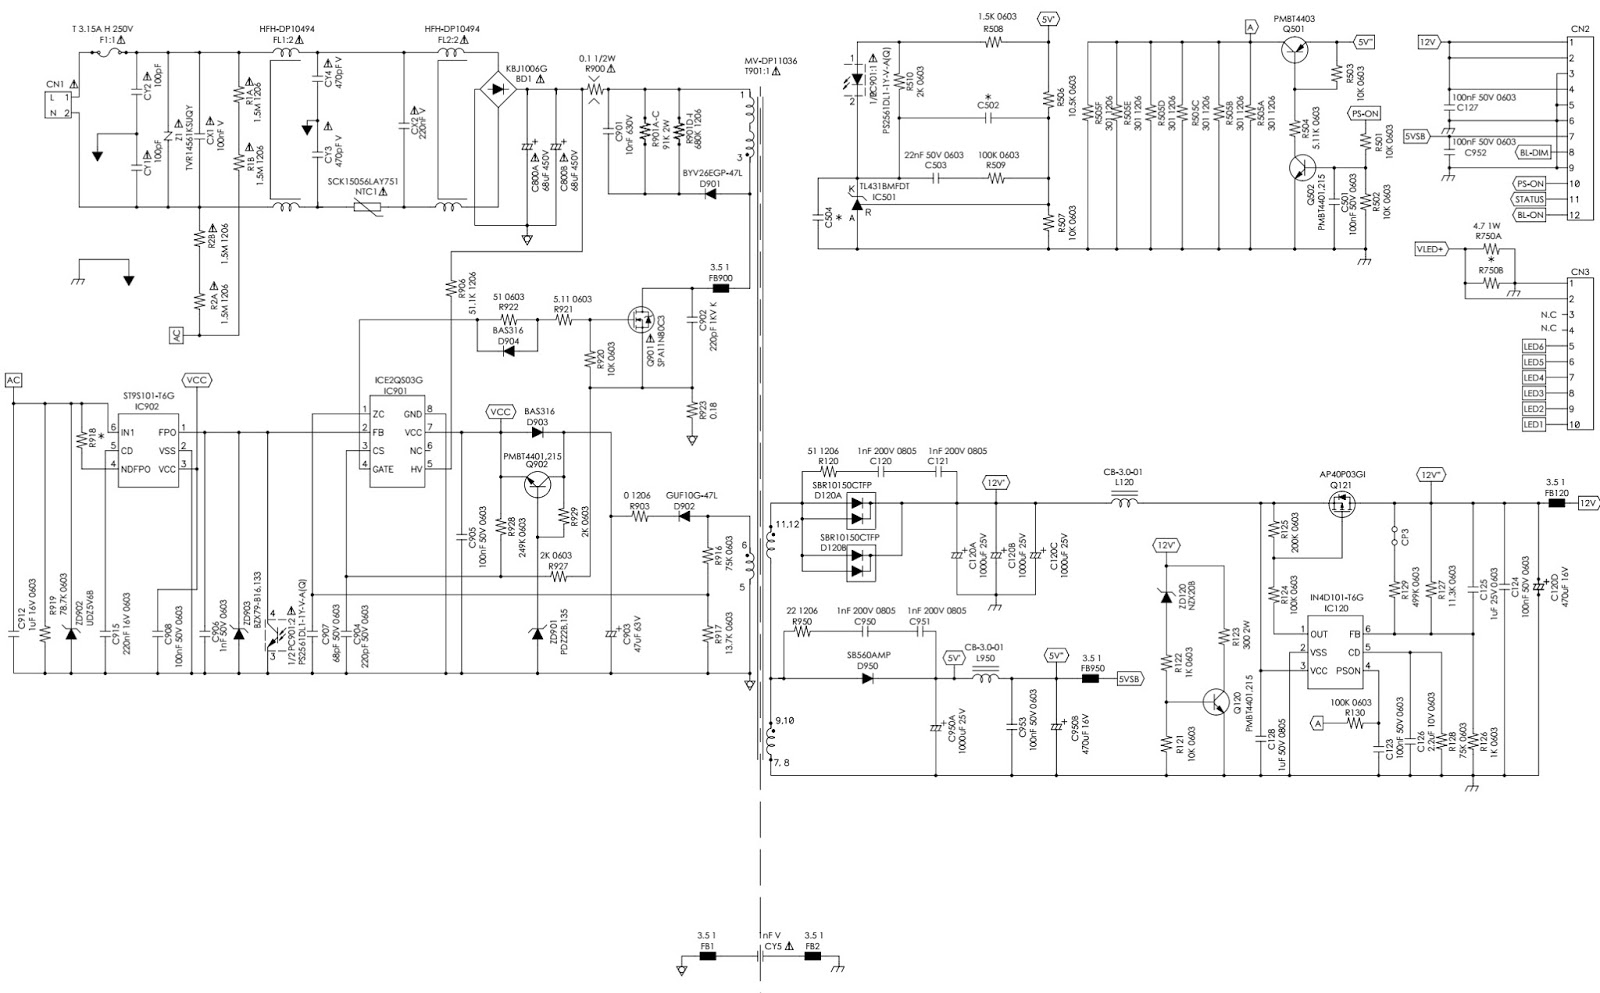 LCD TV SMPS schematic - Delta DPS 77PA | elektrotricks